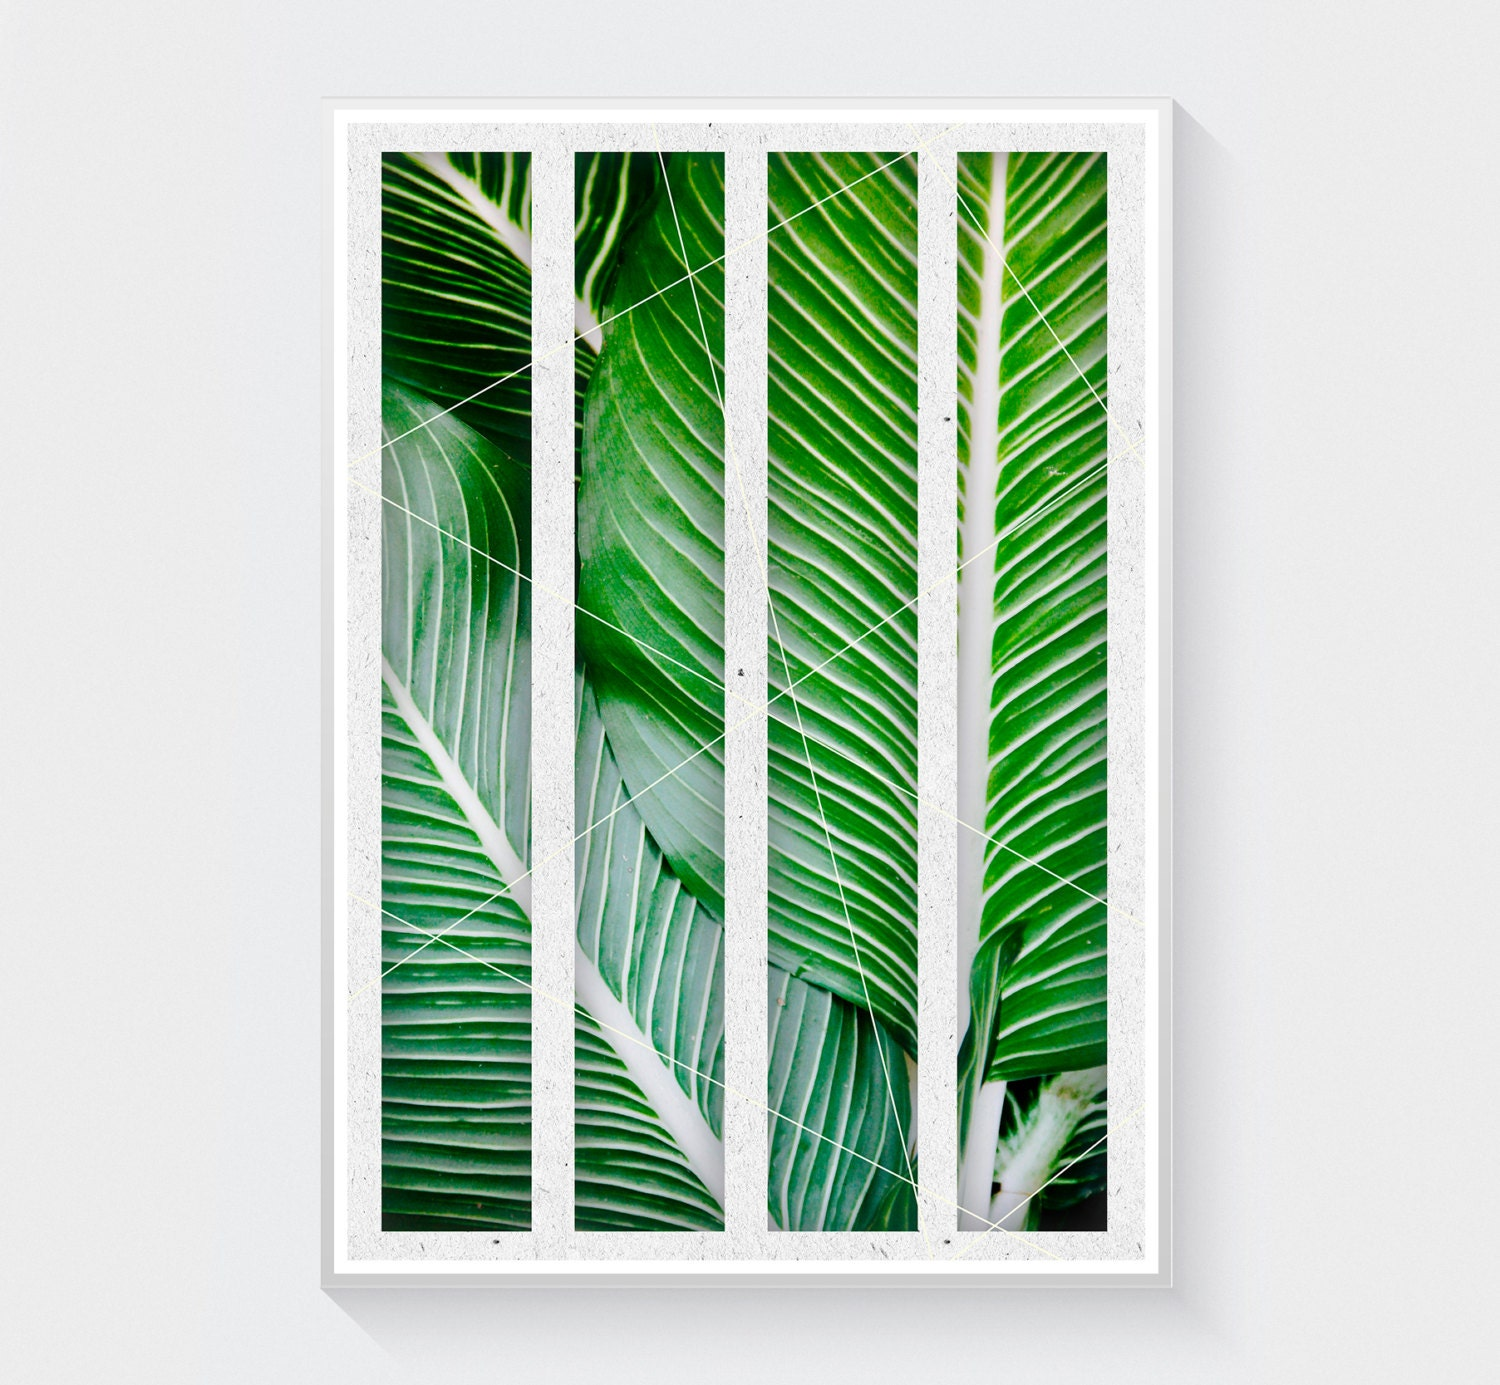 10x15cm in inches with Tropical Leaves Print Green Wall Art on Postcard Set also Rosetta Frame 4x6 moreover 526991593874589993 moreover Travel Mini Album End Of Year Gifts For in addition 261097564042.